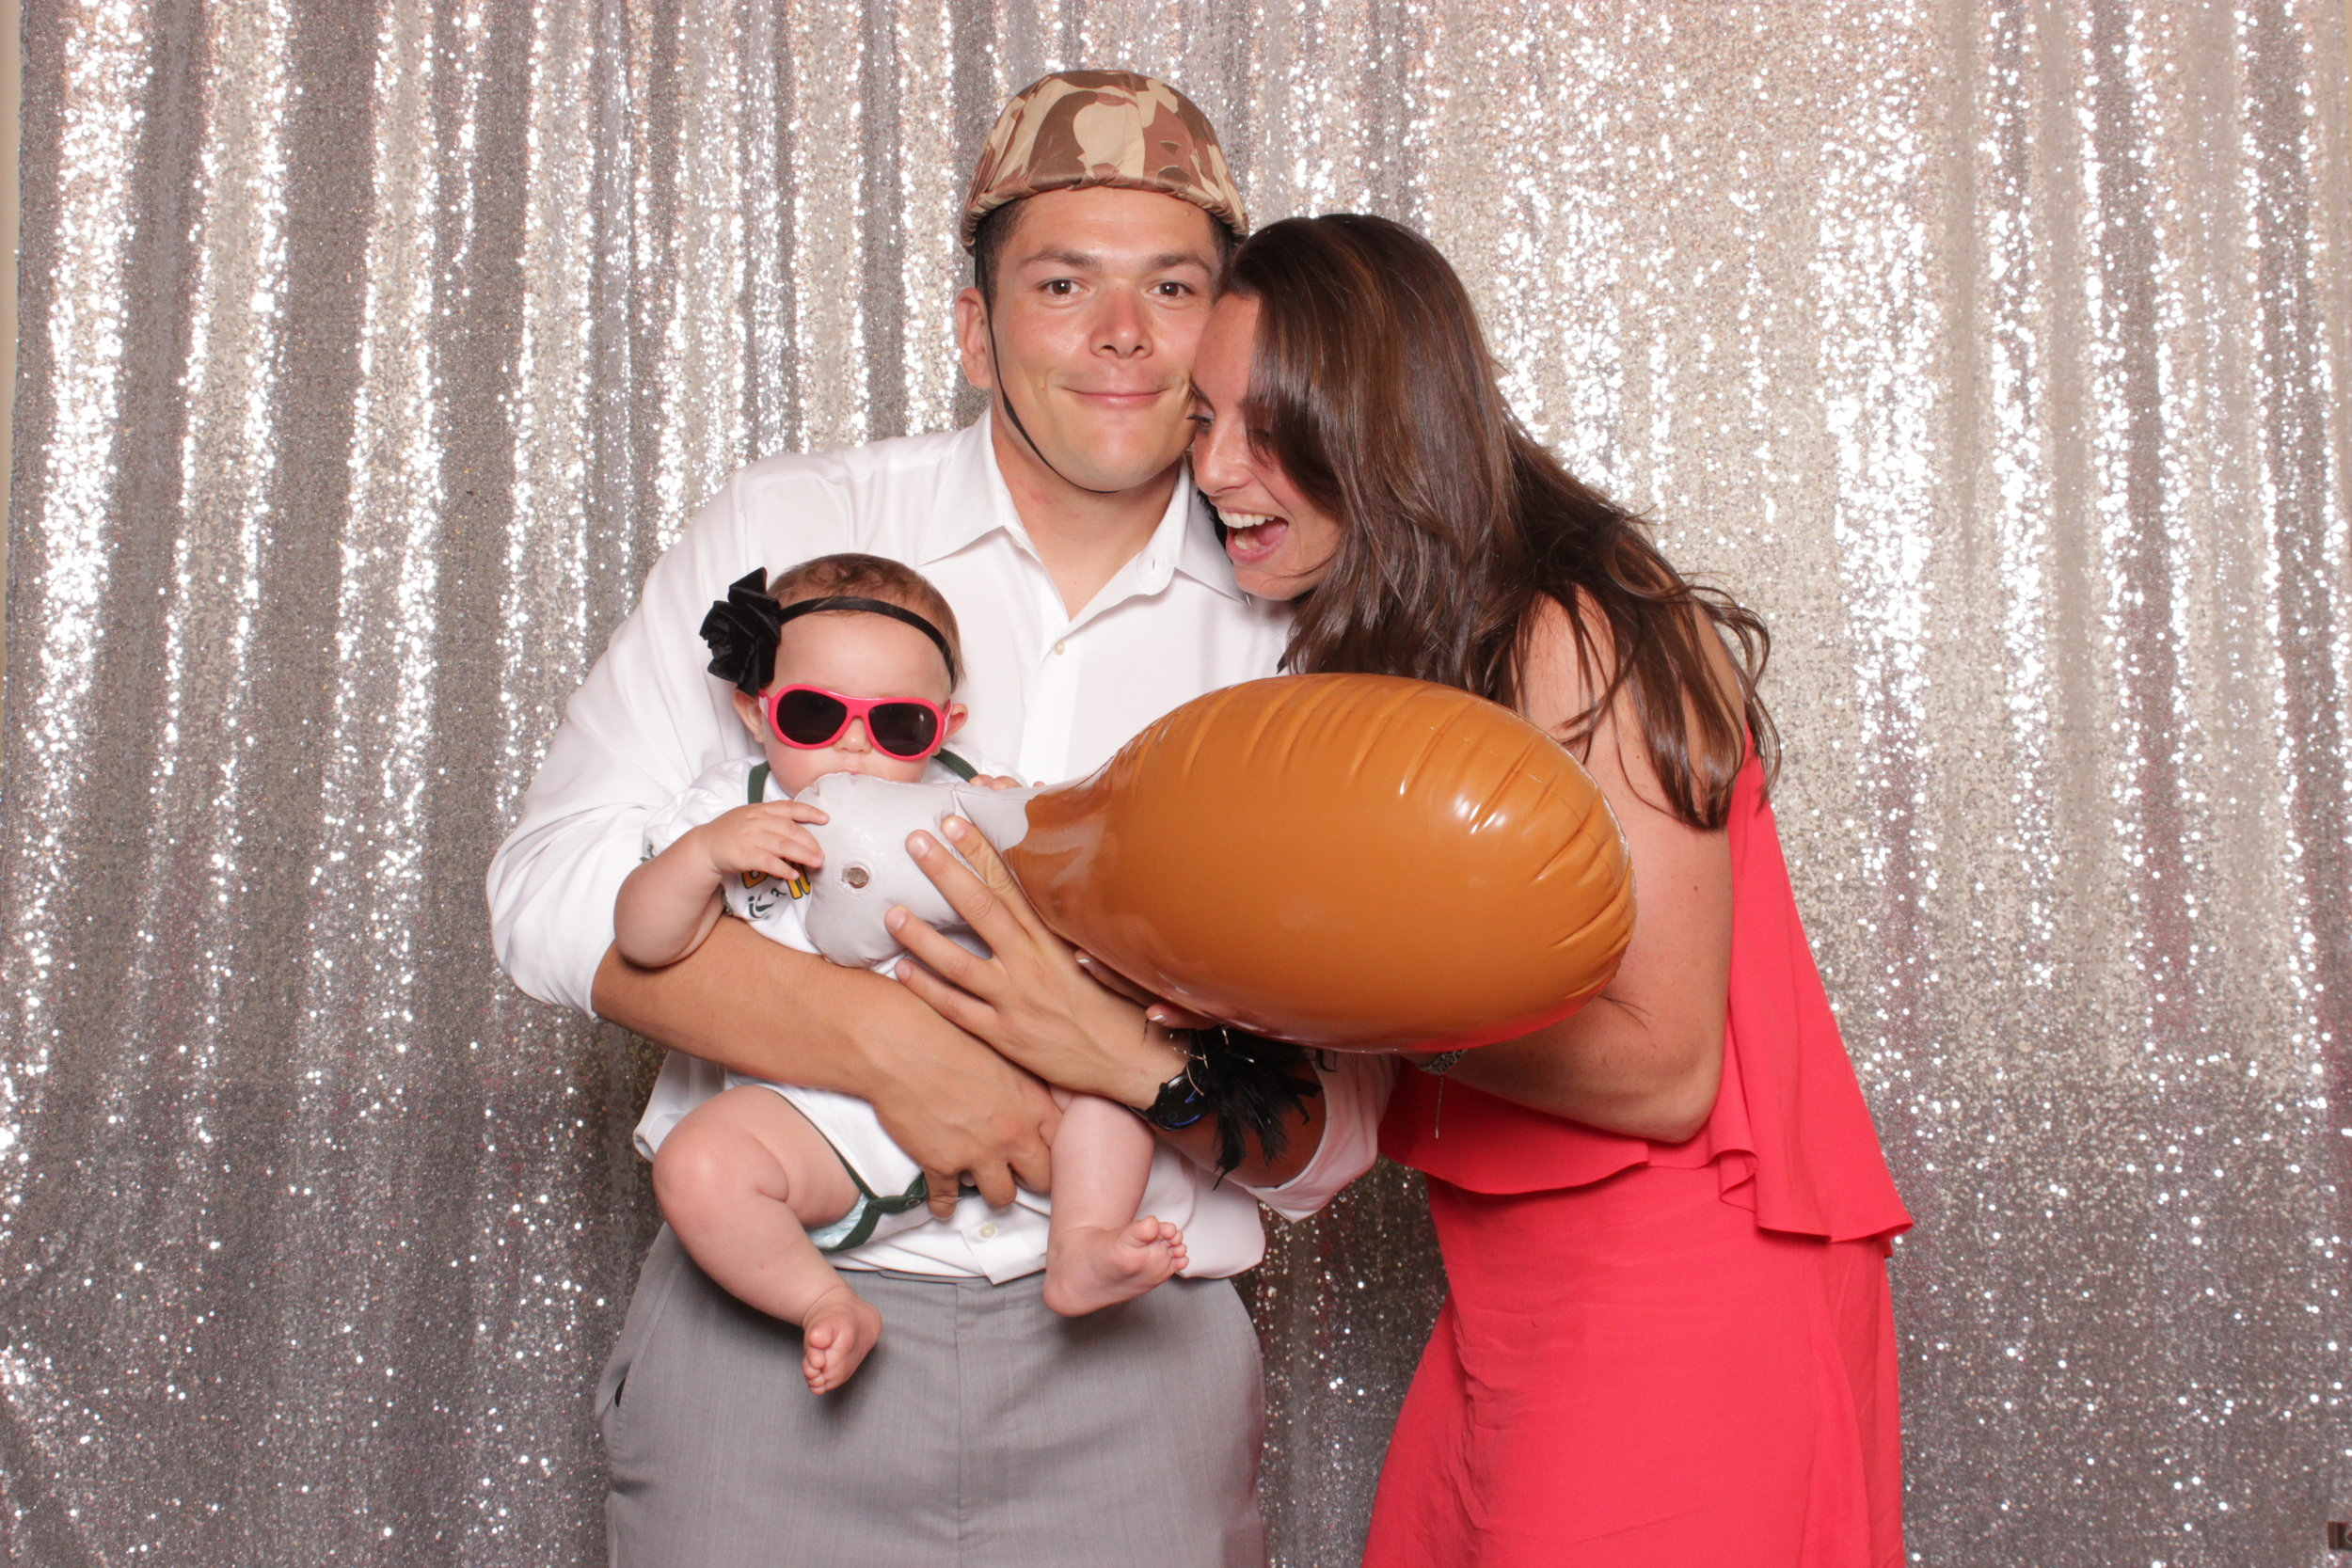 photo-booths-good-for-babies